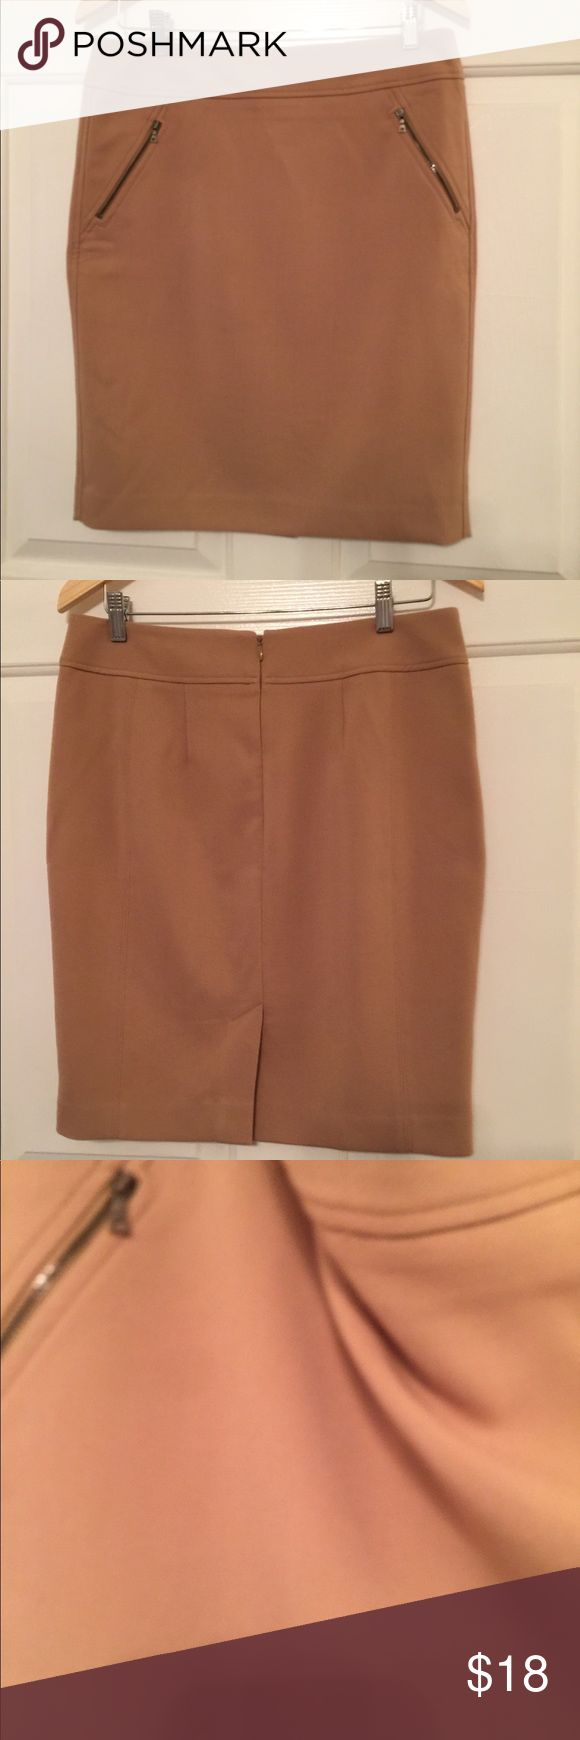 Loft Tan Pencil Skirt A must have in every closet. A tan pencil skirt with two front zippers and a zipper in the back. It's fully lined and only worn a couple of times. No stains, tears or defects. Bundle to receive an additional discount!!🤗 LOFT Skirts